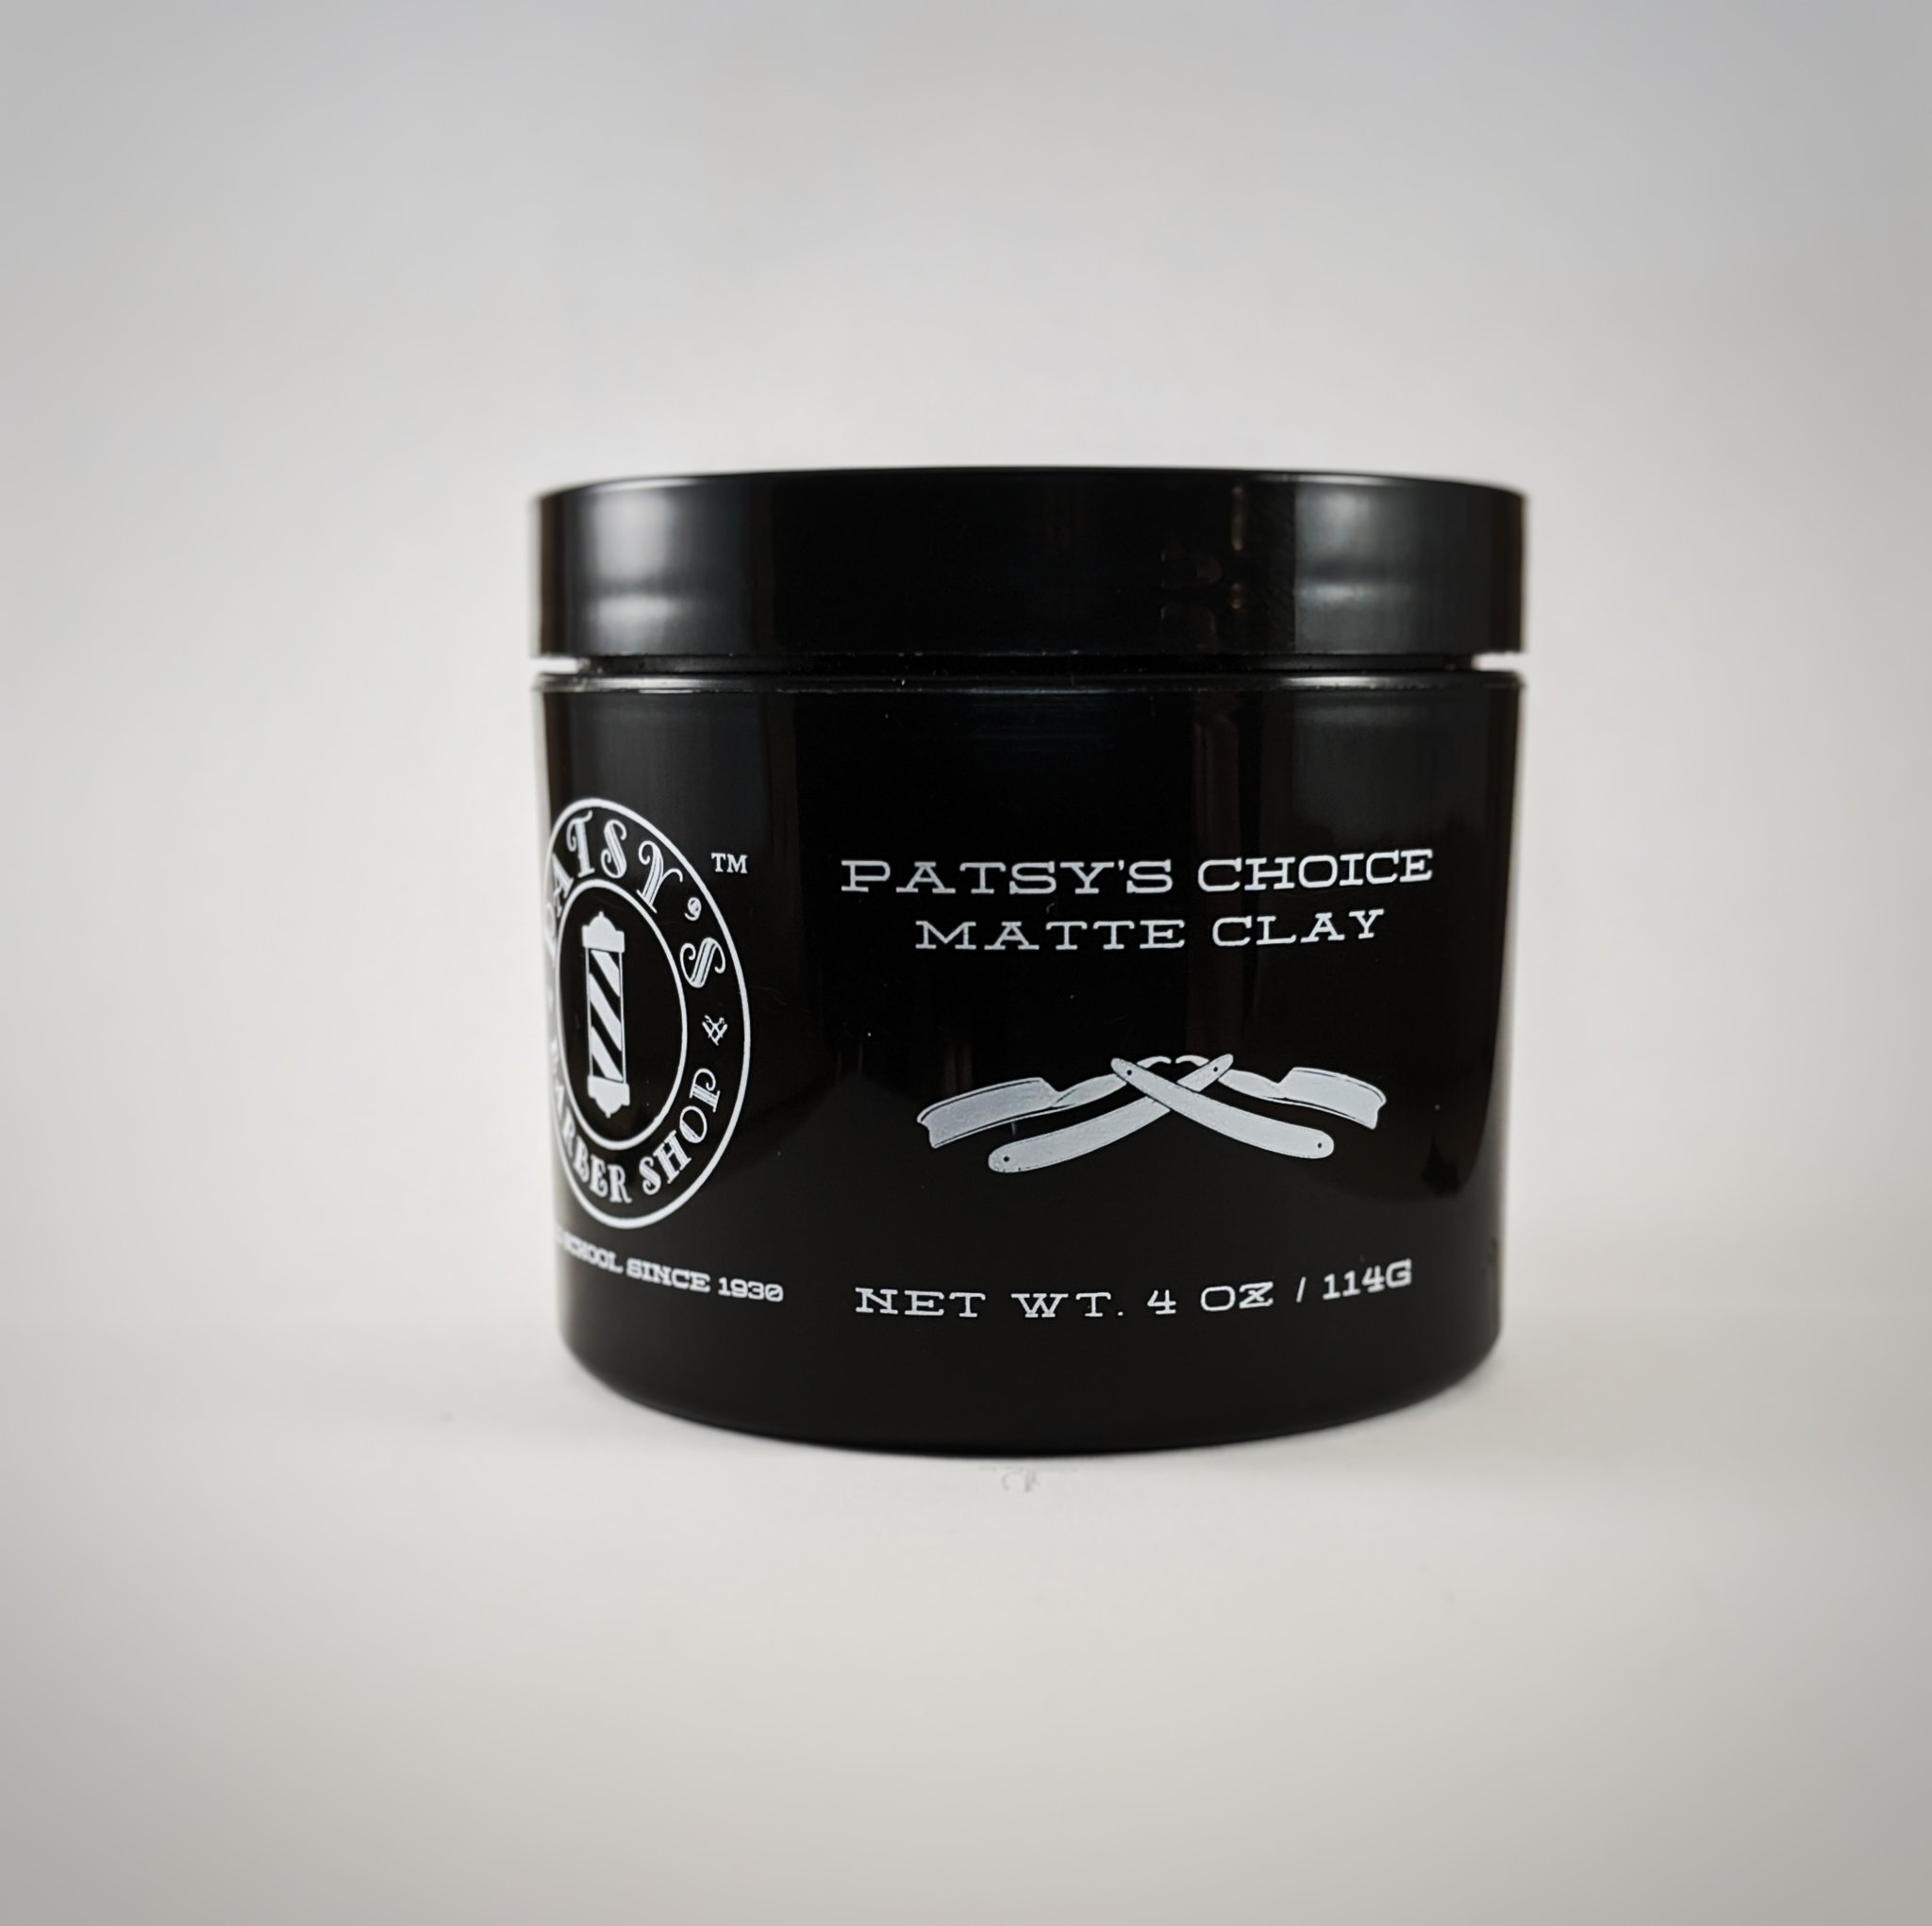 Patsy's Choice Matte Clay